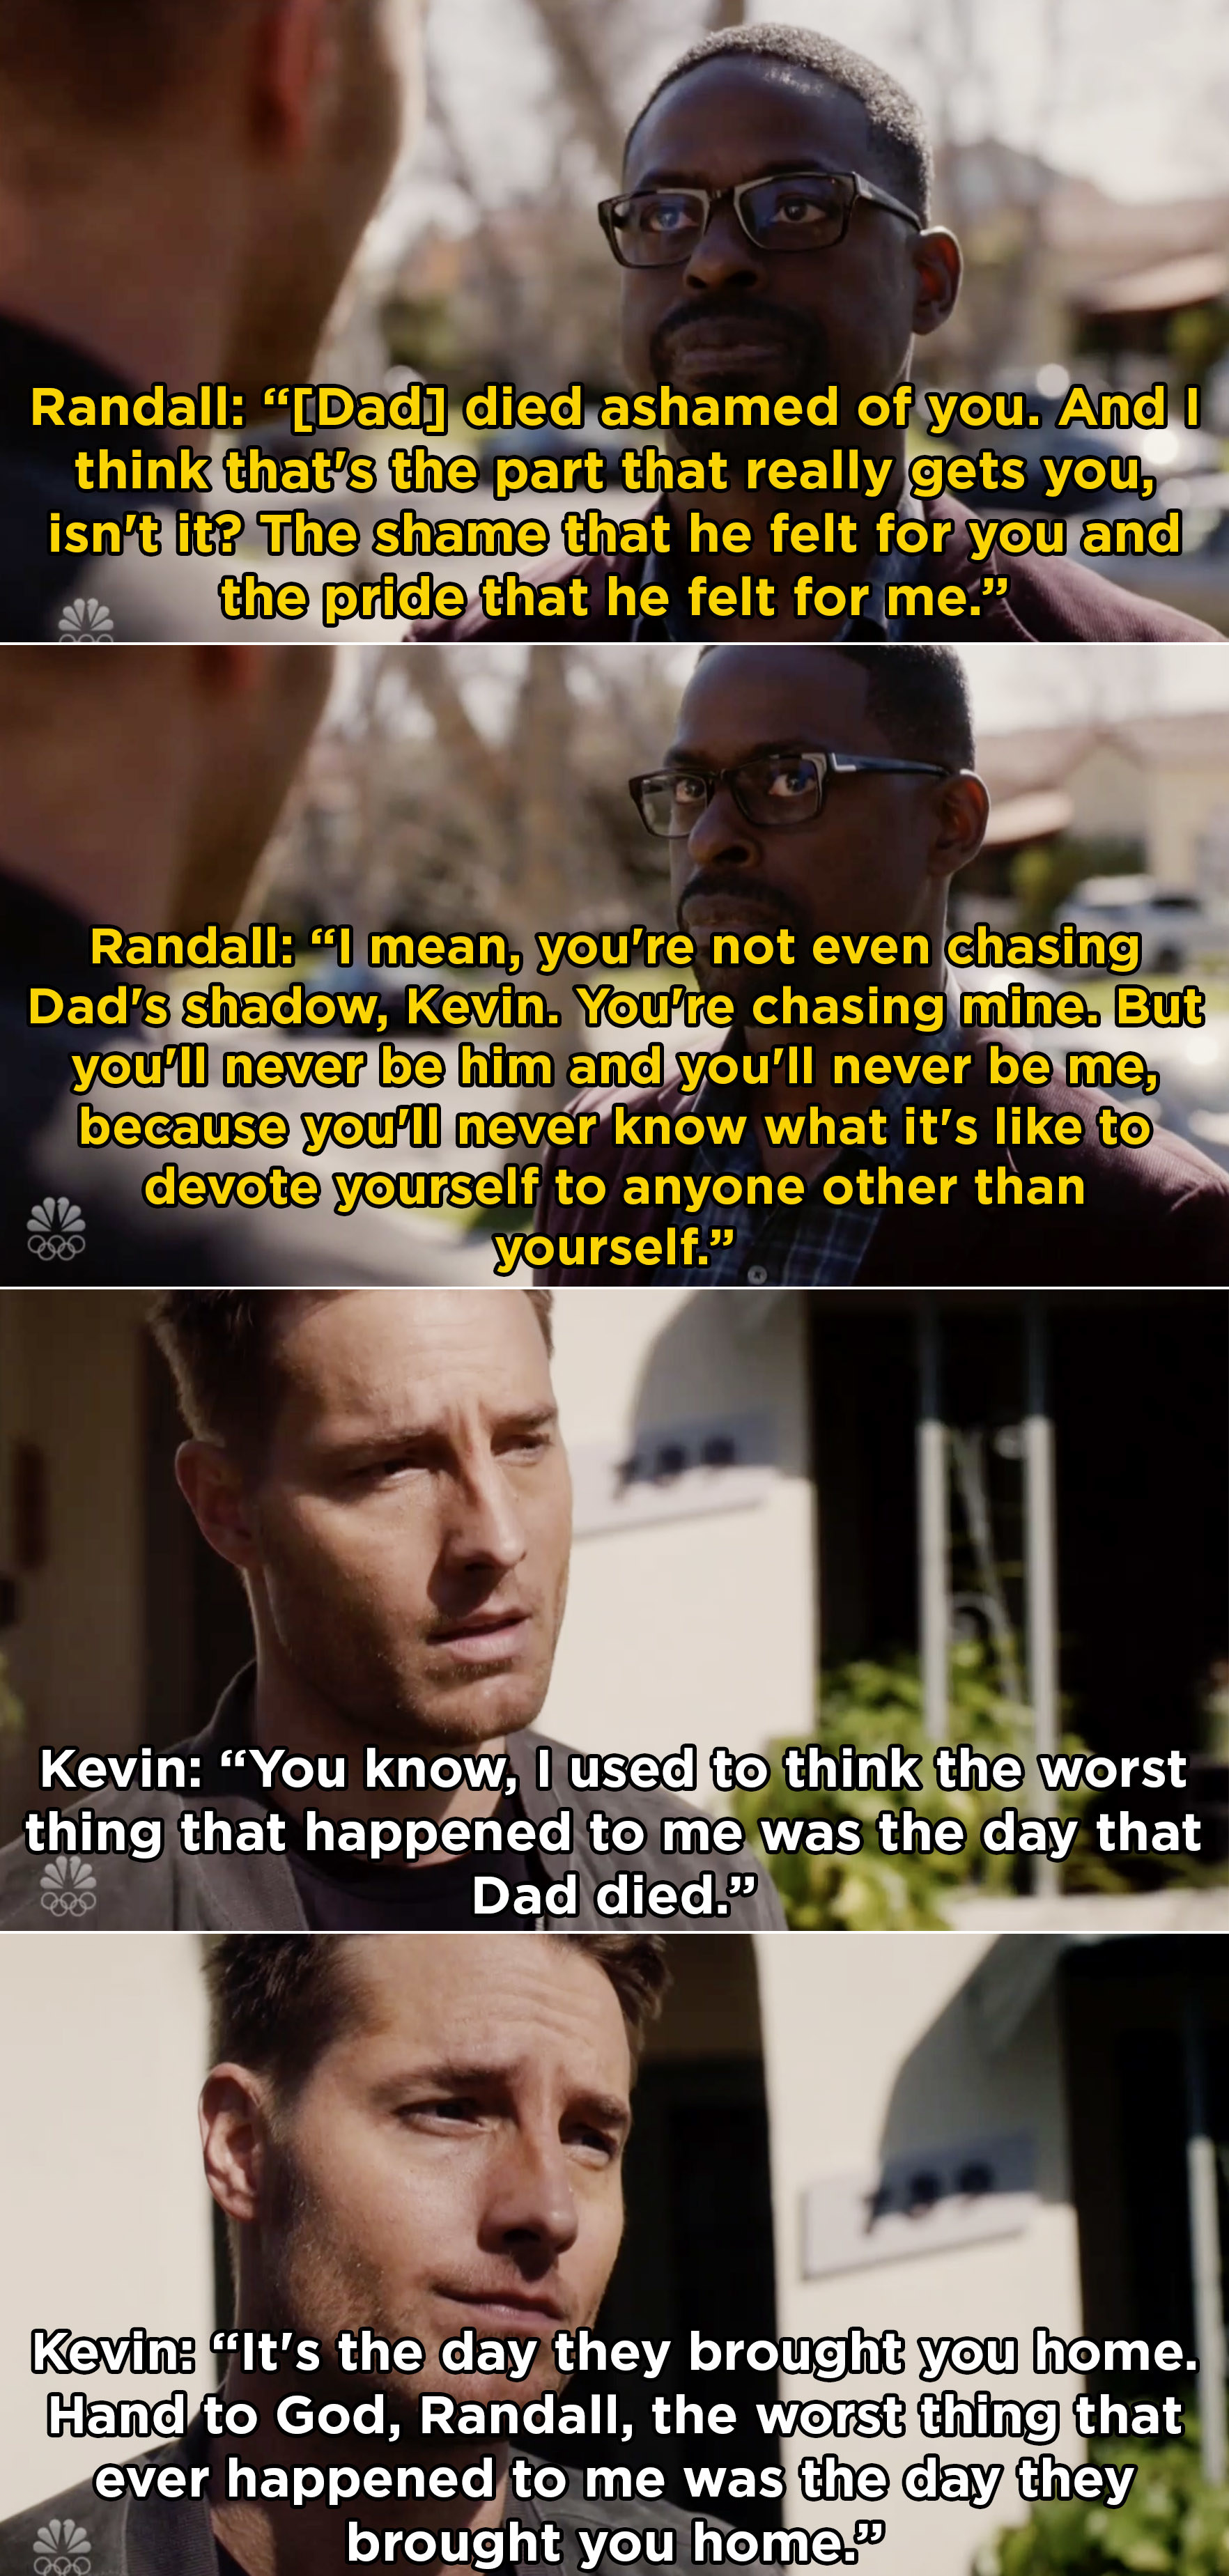 Kevin saying he used to think the worst day of his life was when Jack died, but it's actually when they brought Randall home